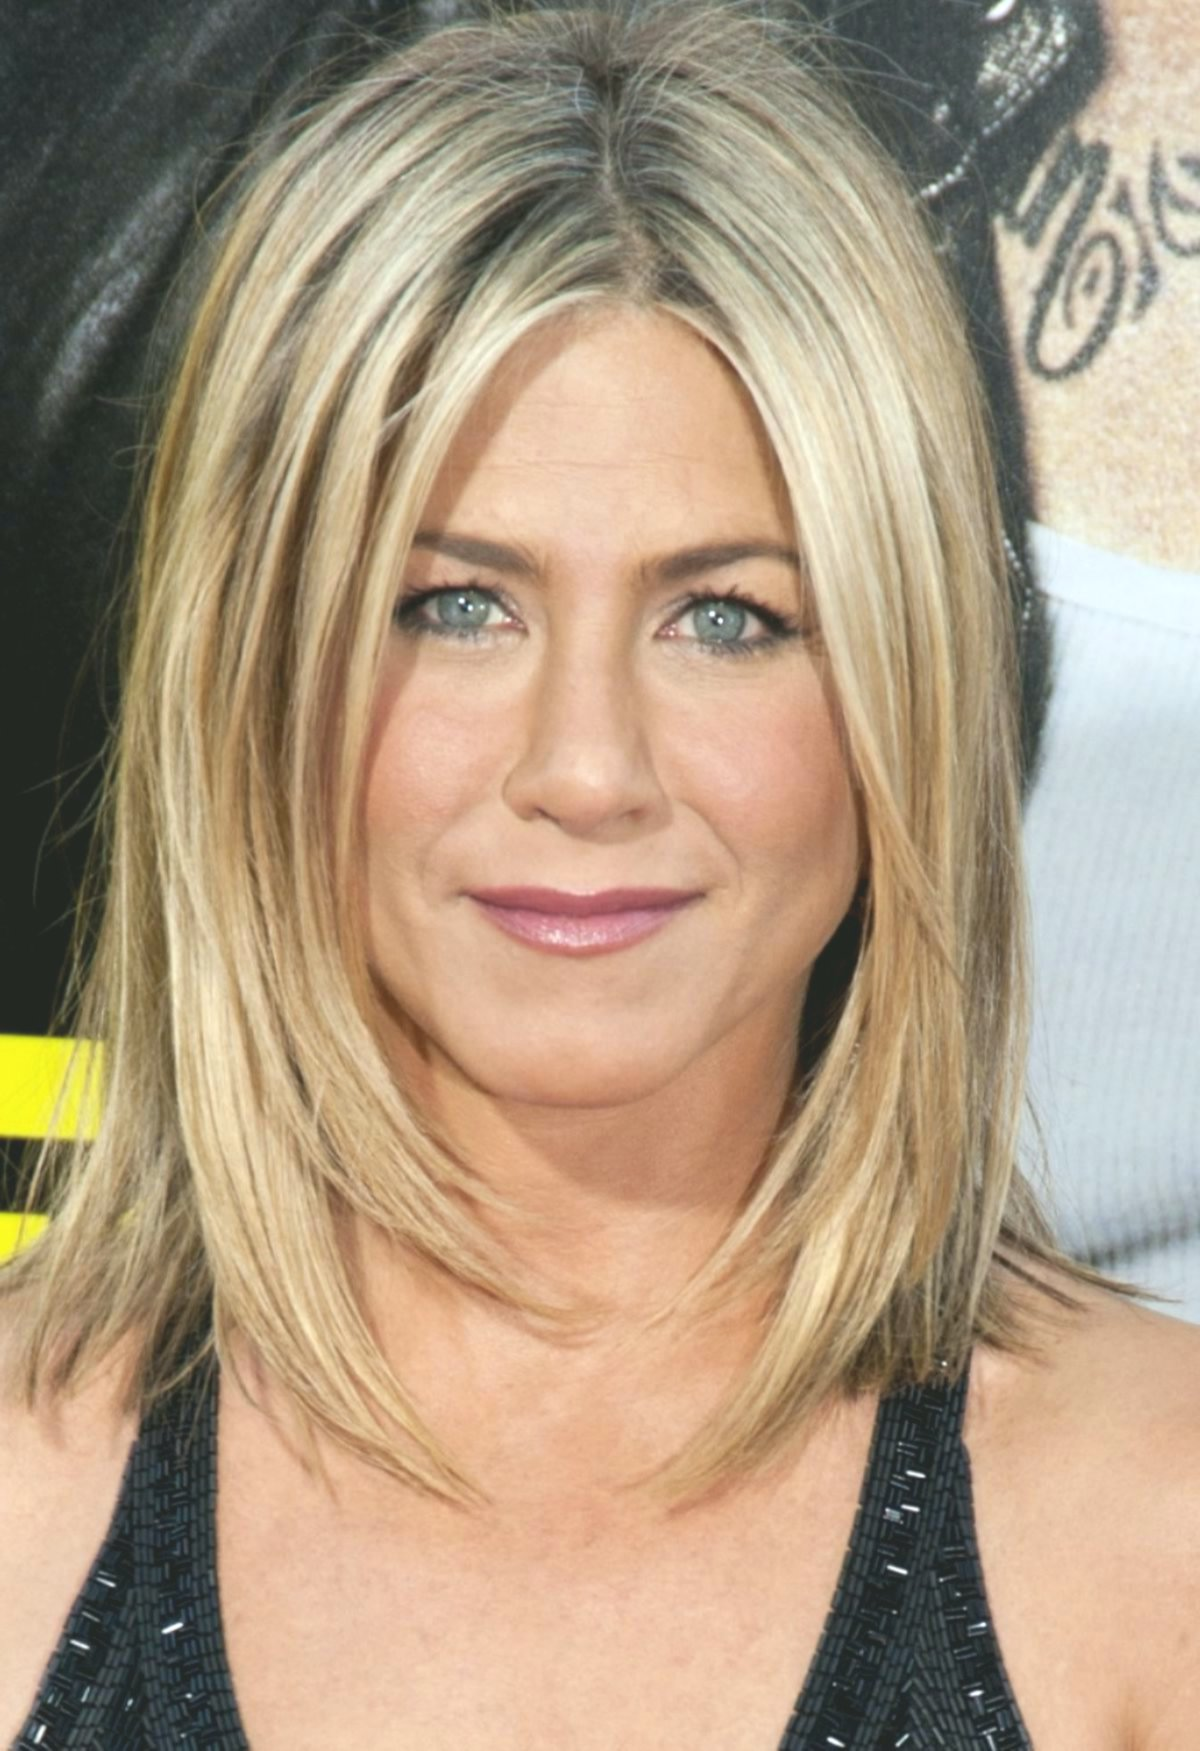 fresh oval face hairstyle ideas - Charming Oval face hairstyle portrait